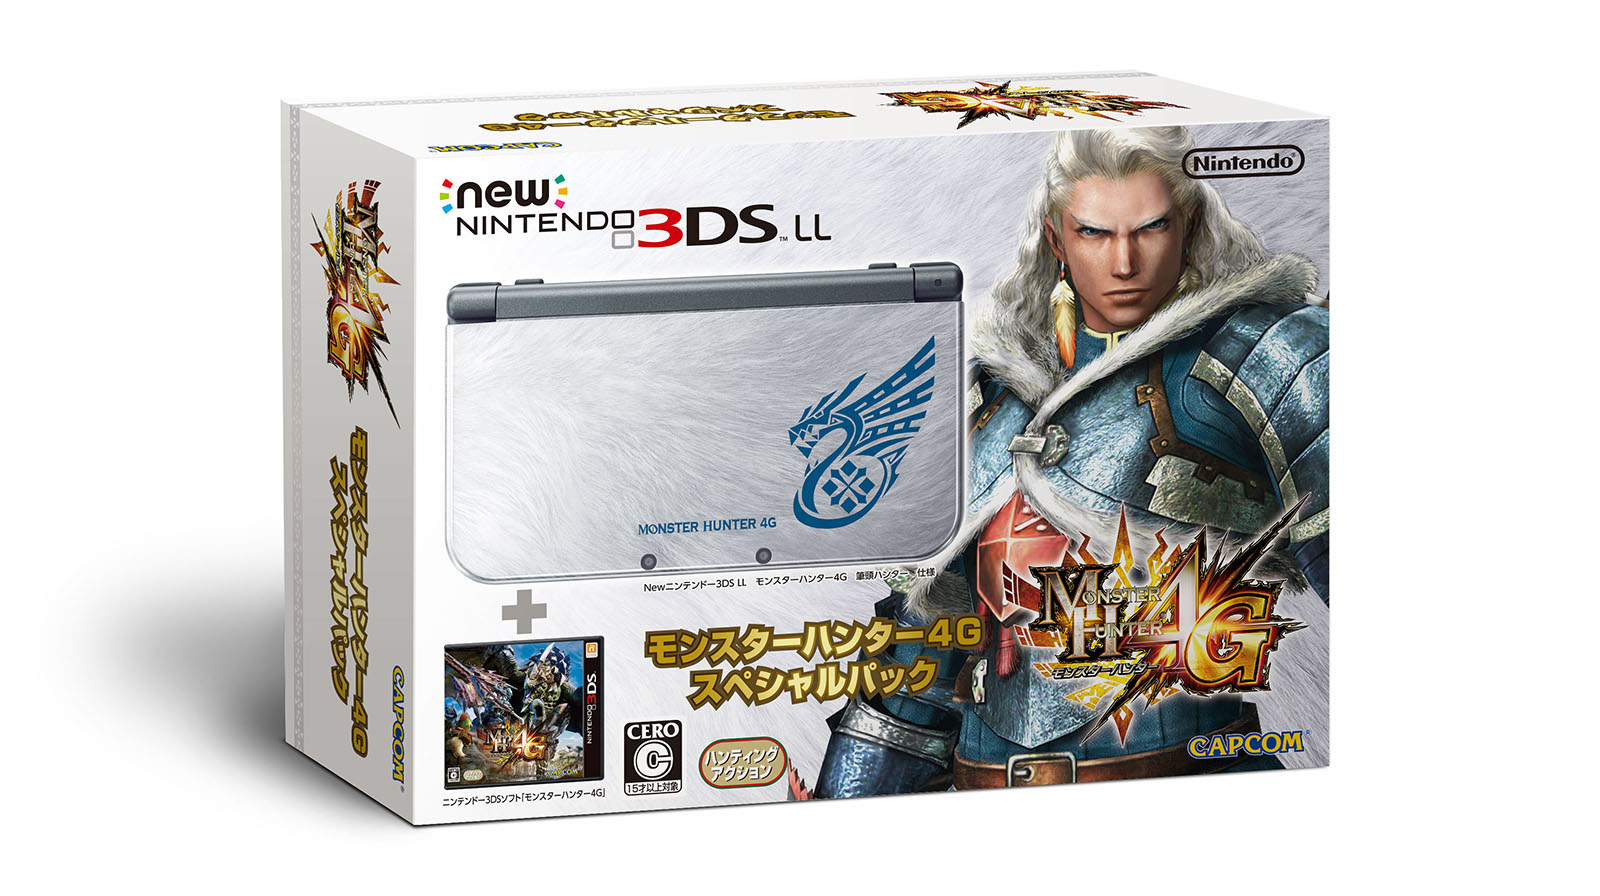 mh4-3ds-xl-1.jpg